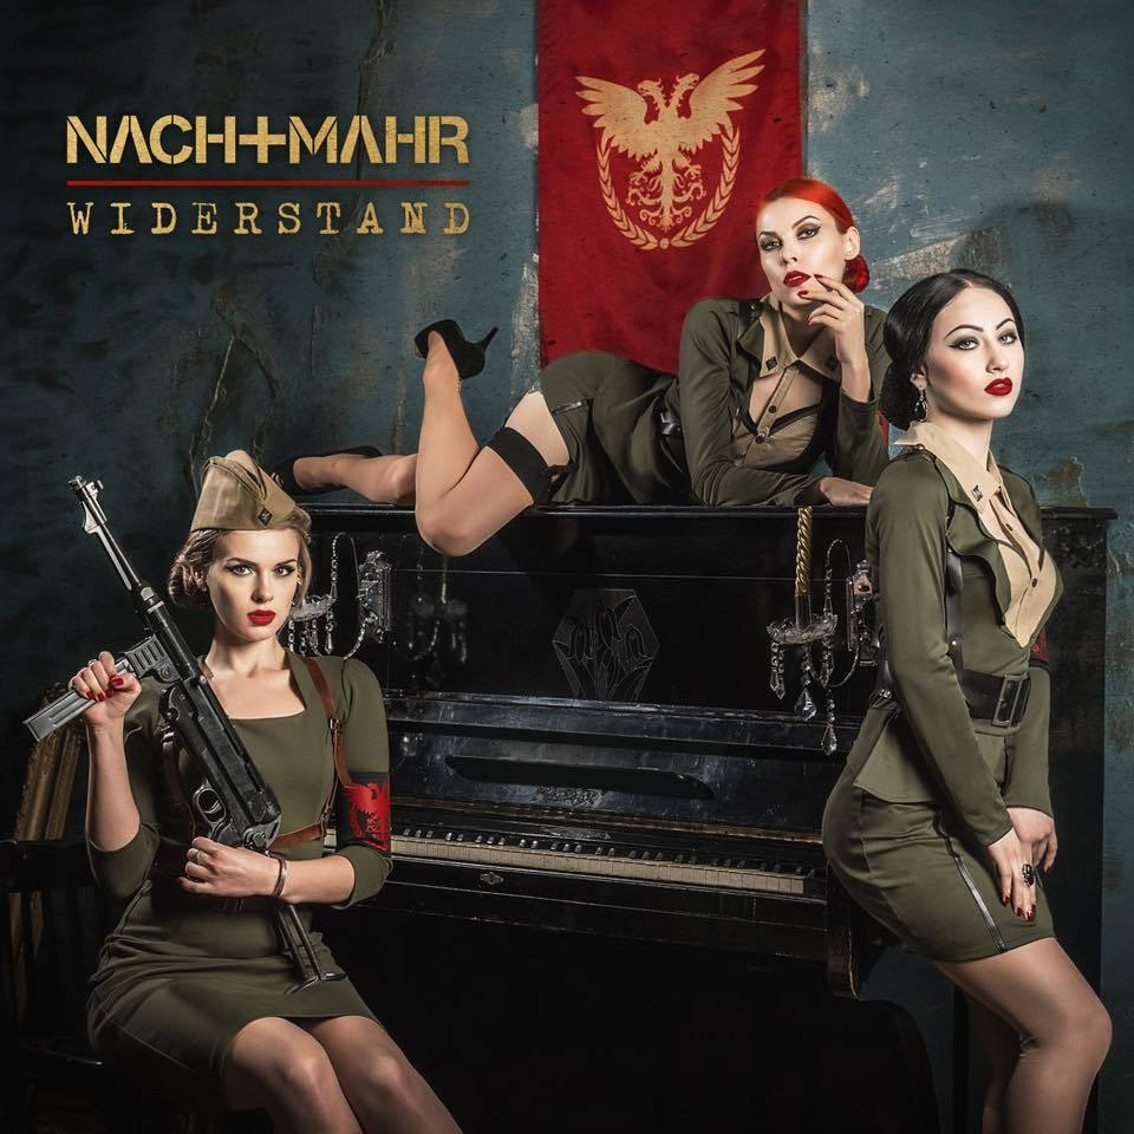 Nachtmahr joins the resistance with their newest EP'Widerstand'